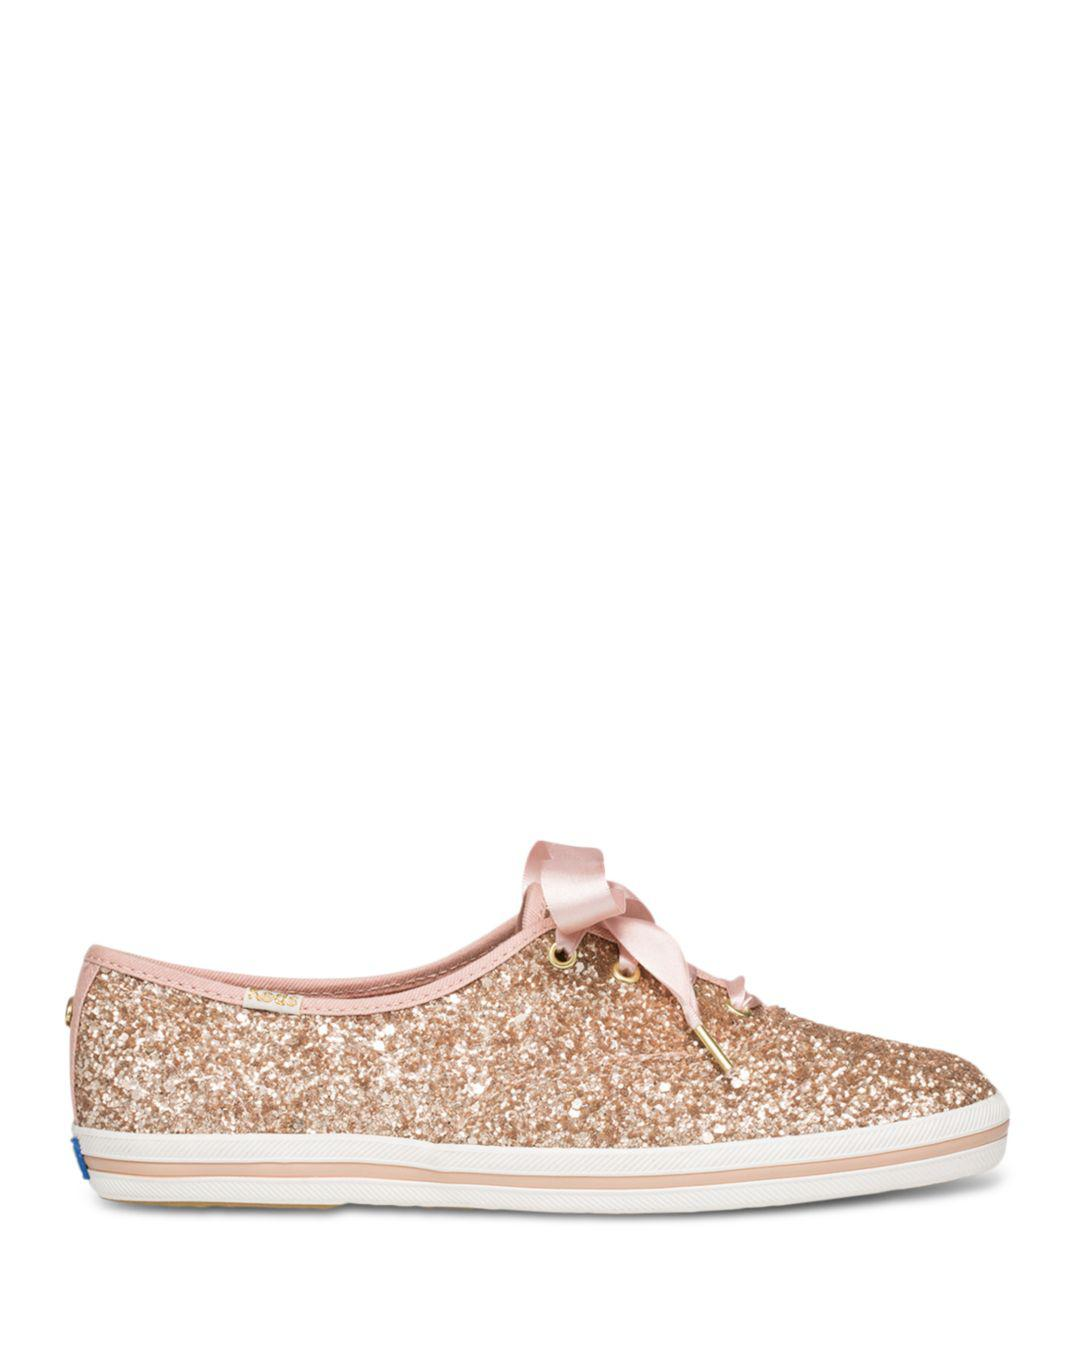 88f745cbe82 Lyst - Keds X Kate Spade New York Women s Glitter Lace Up Sneakers